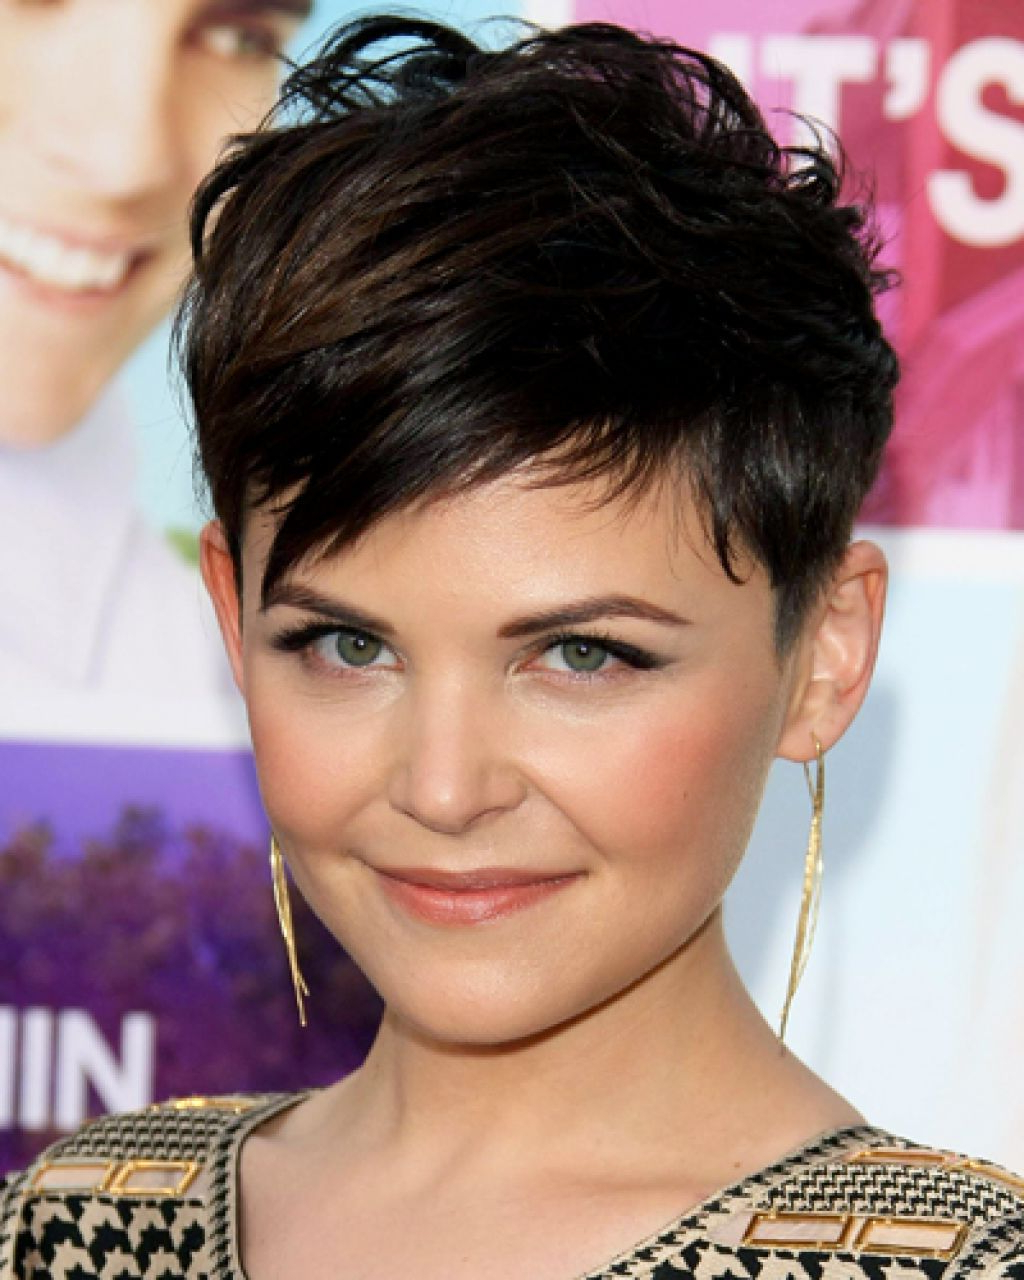 Black Short Hairstyles For Round Faces | Sally's Wedding Hair With Regard To Short Haircuts For Round Faces Black Hair (View 22 of 25)